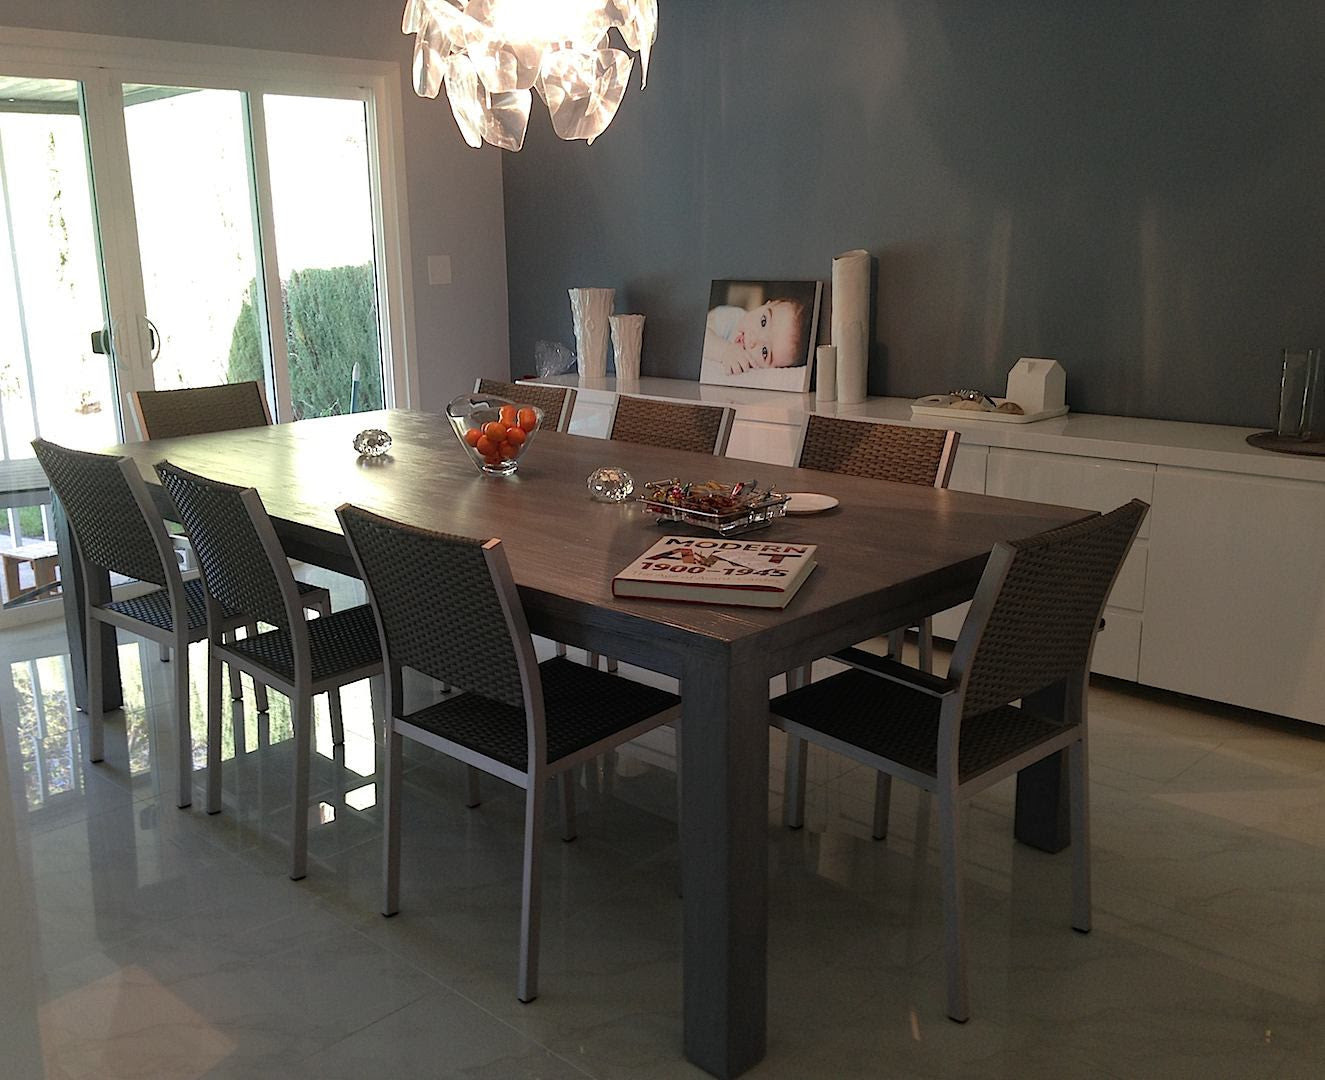 Urban Modern Dining Room- Roca Dining Table - Mortise & Tenon